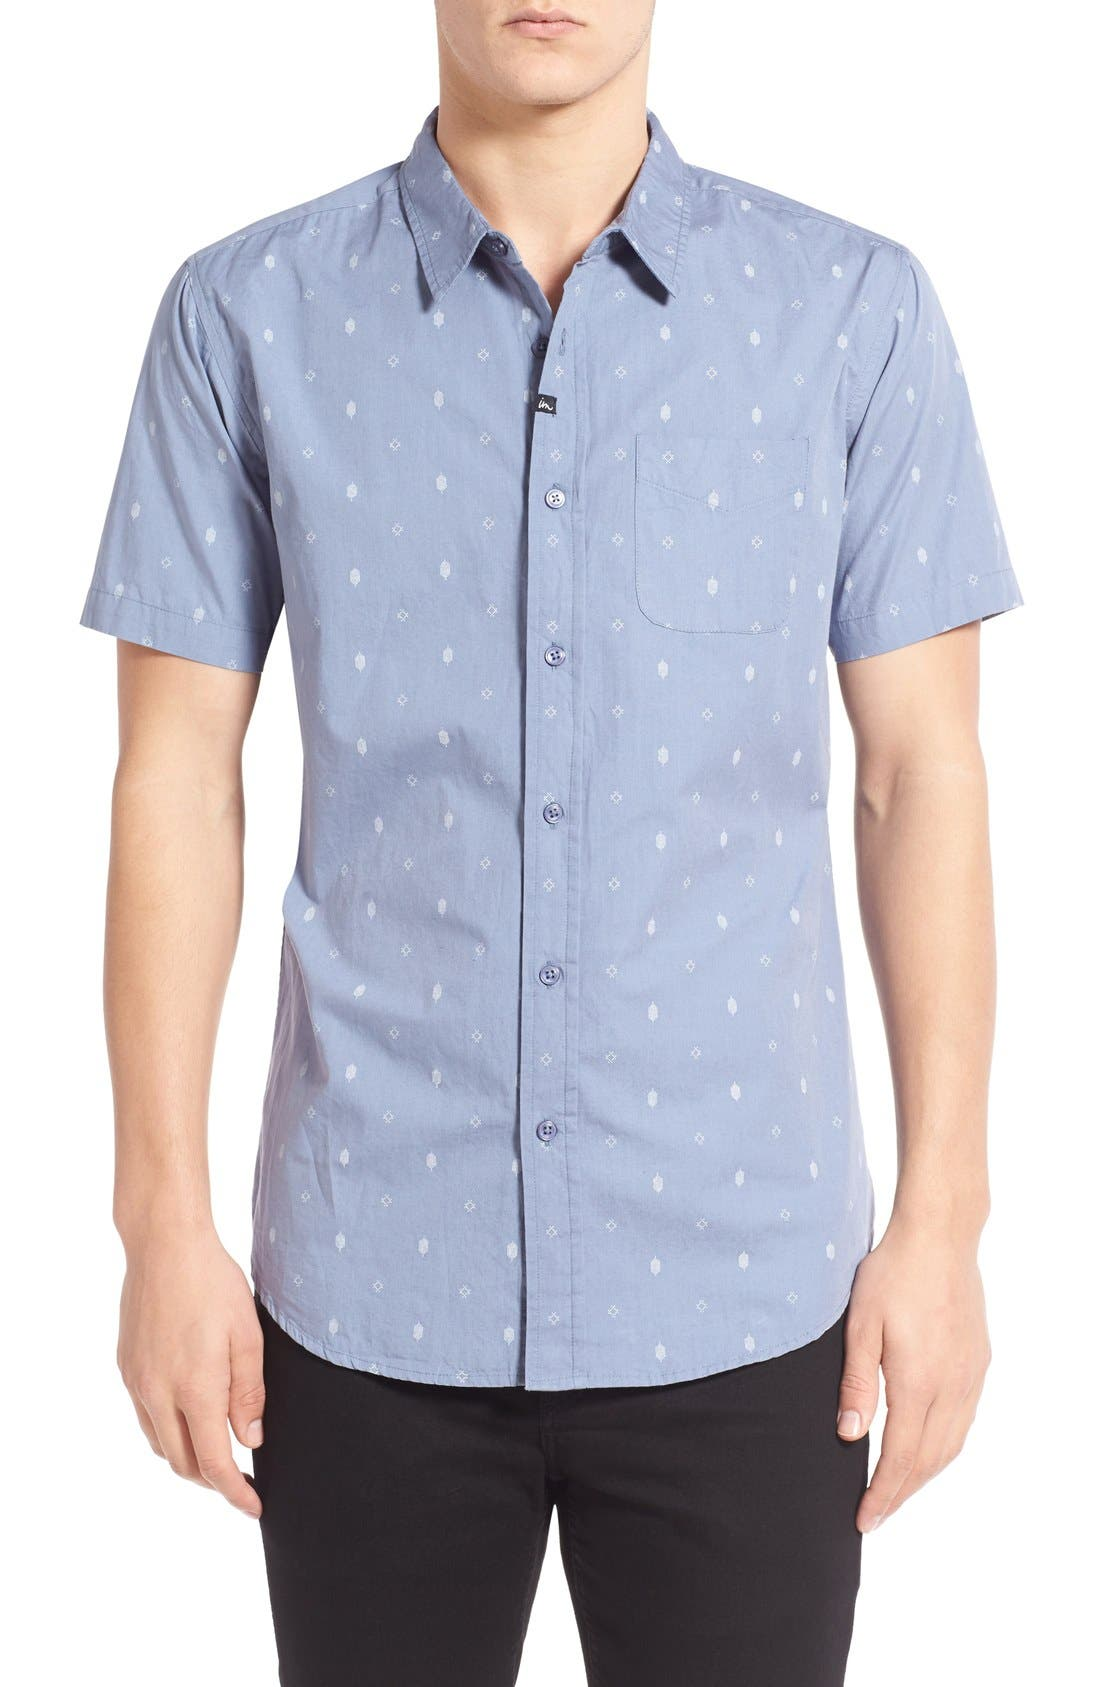 IMPERIAL MOTION 'Crosby' Print Short Sleeve Woven Shirt